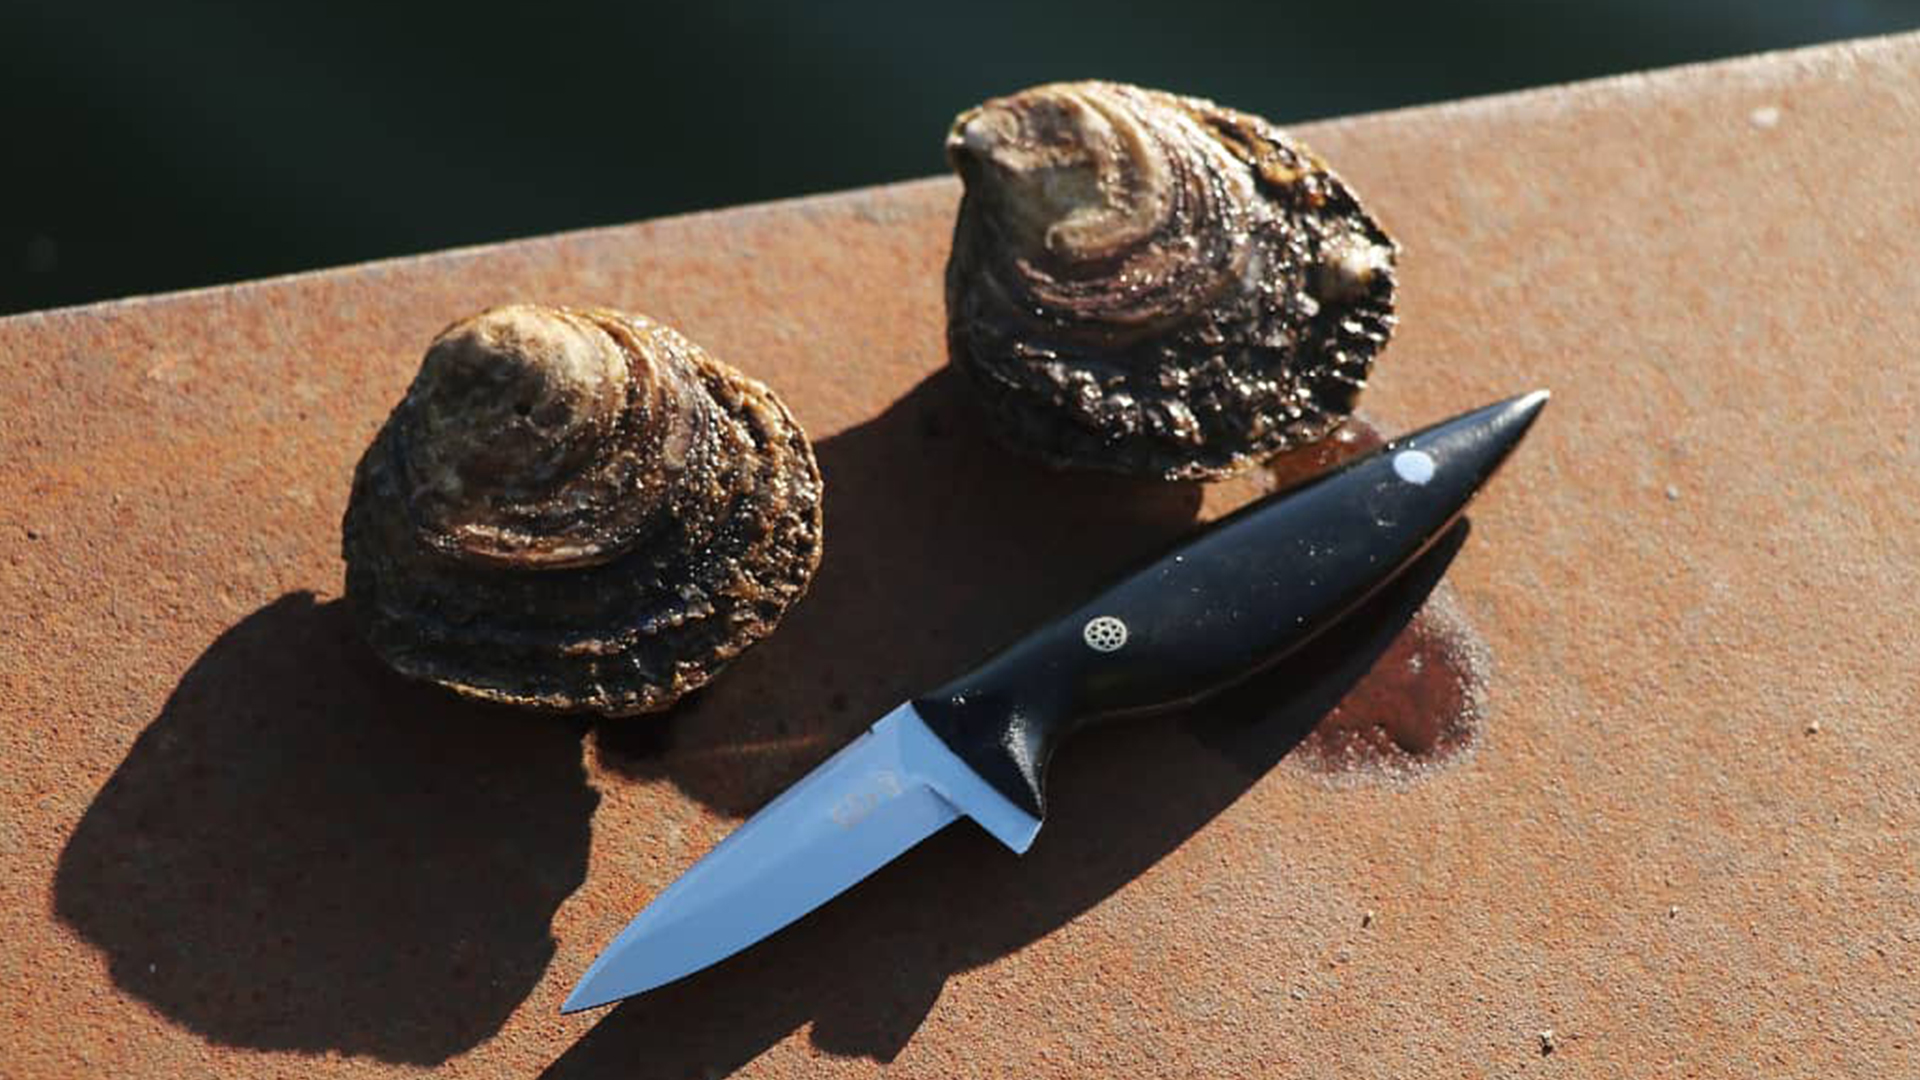 A ''Pearl'' type oyster shucker. Made exclusively for Zeeland's Roem.